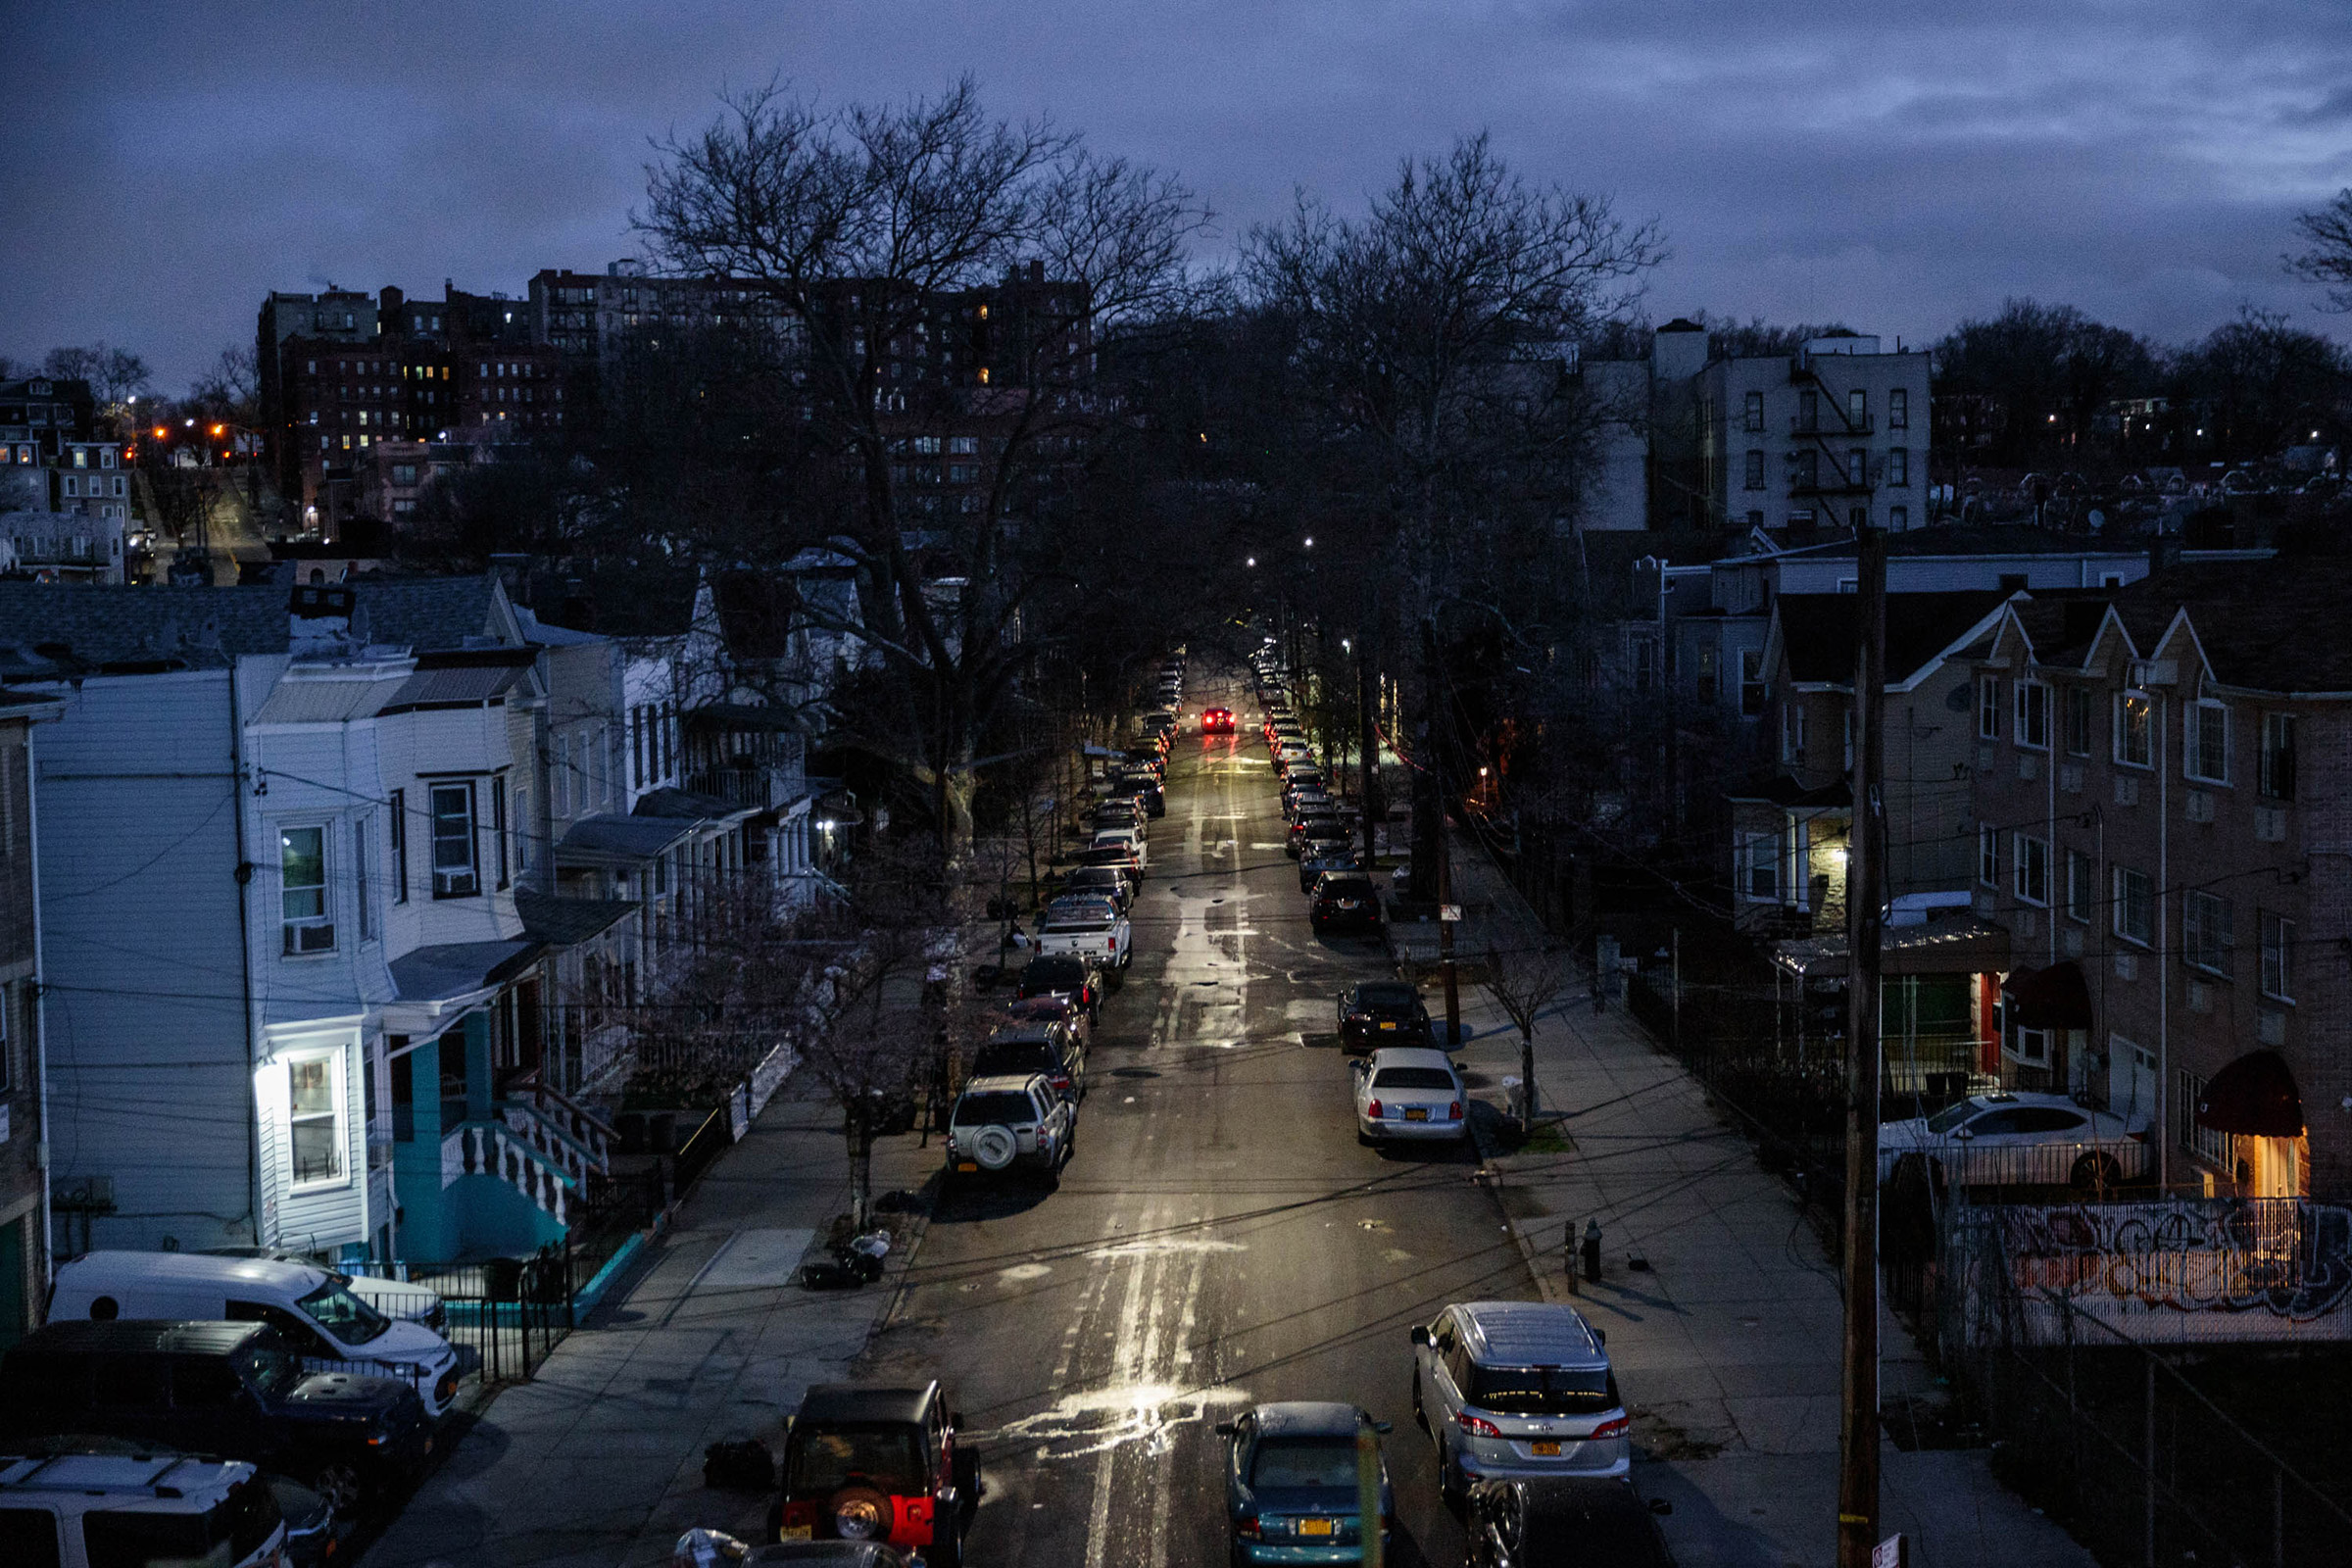 Early morning twilight over Brooklyn on March 24. Mayor DeBlasio declared a state of emergency in New York City last week, and large gatherings have been banned, and all nonessential businesses across the state have been ordered to close.